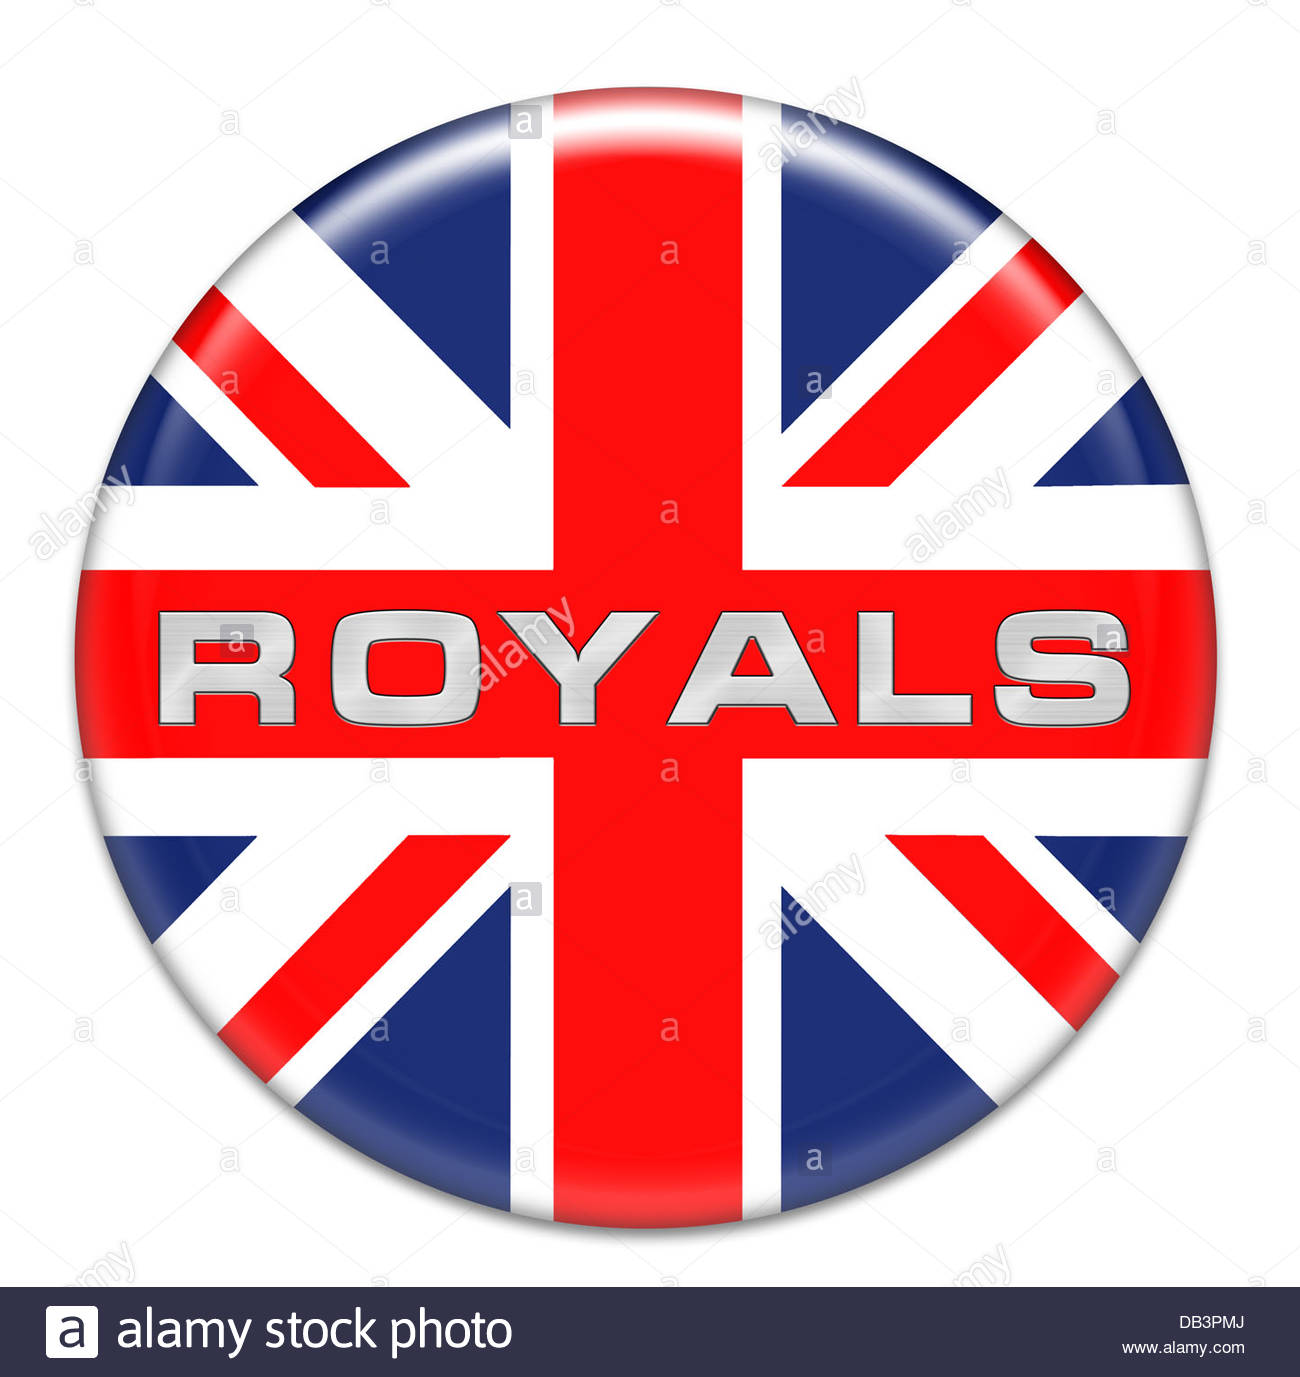 Royals button - Stock Image